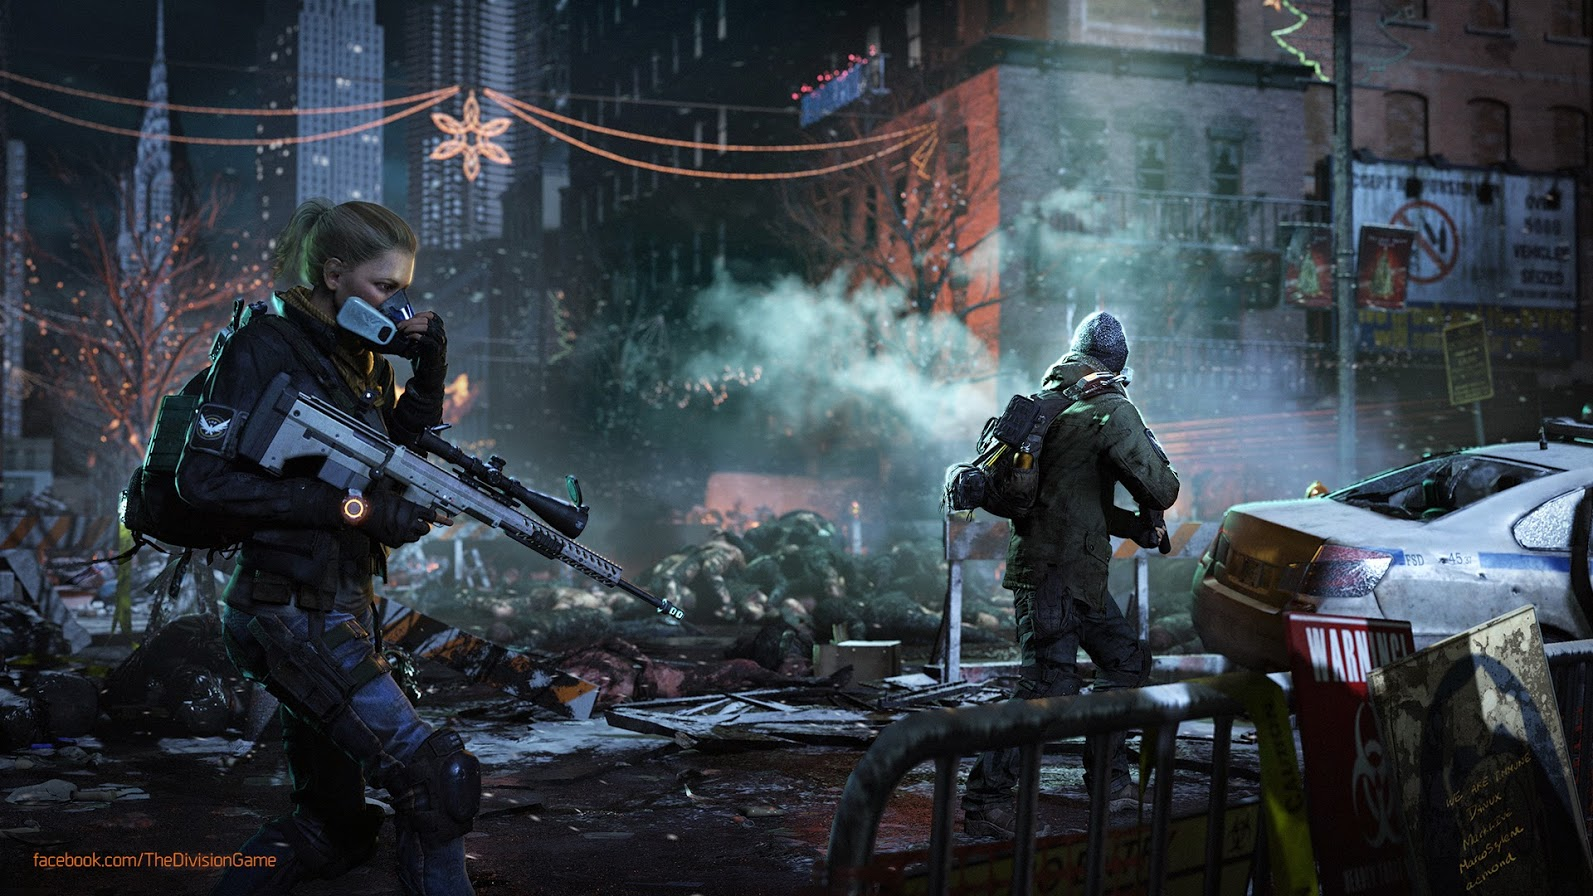 The Division closed beta key